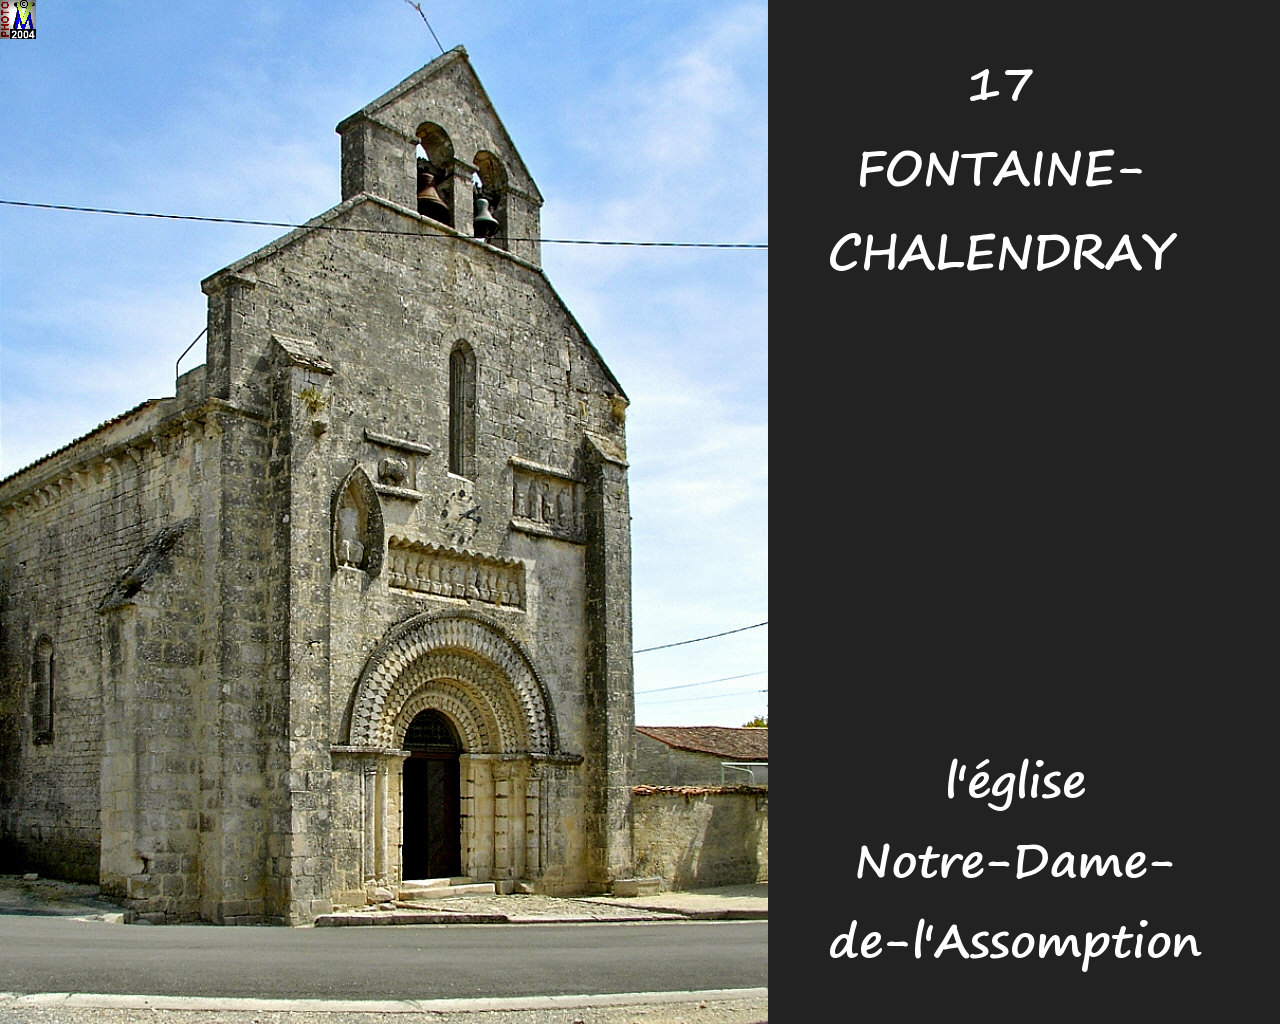 17FONTAINE-CHALENDRAY_eglise_100.jpg